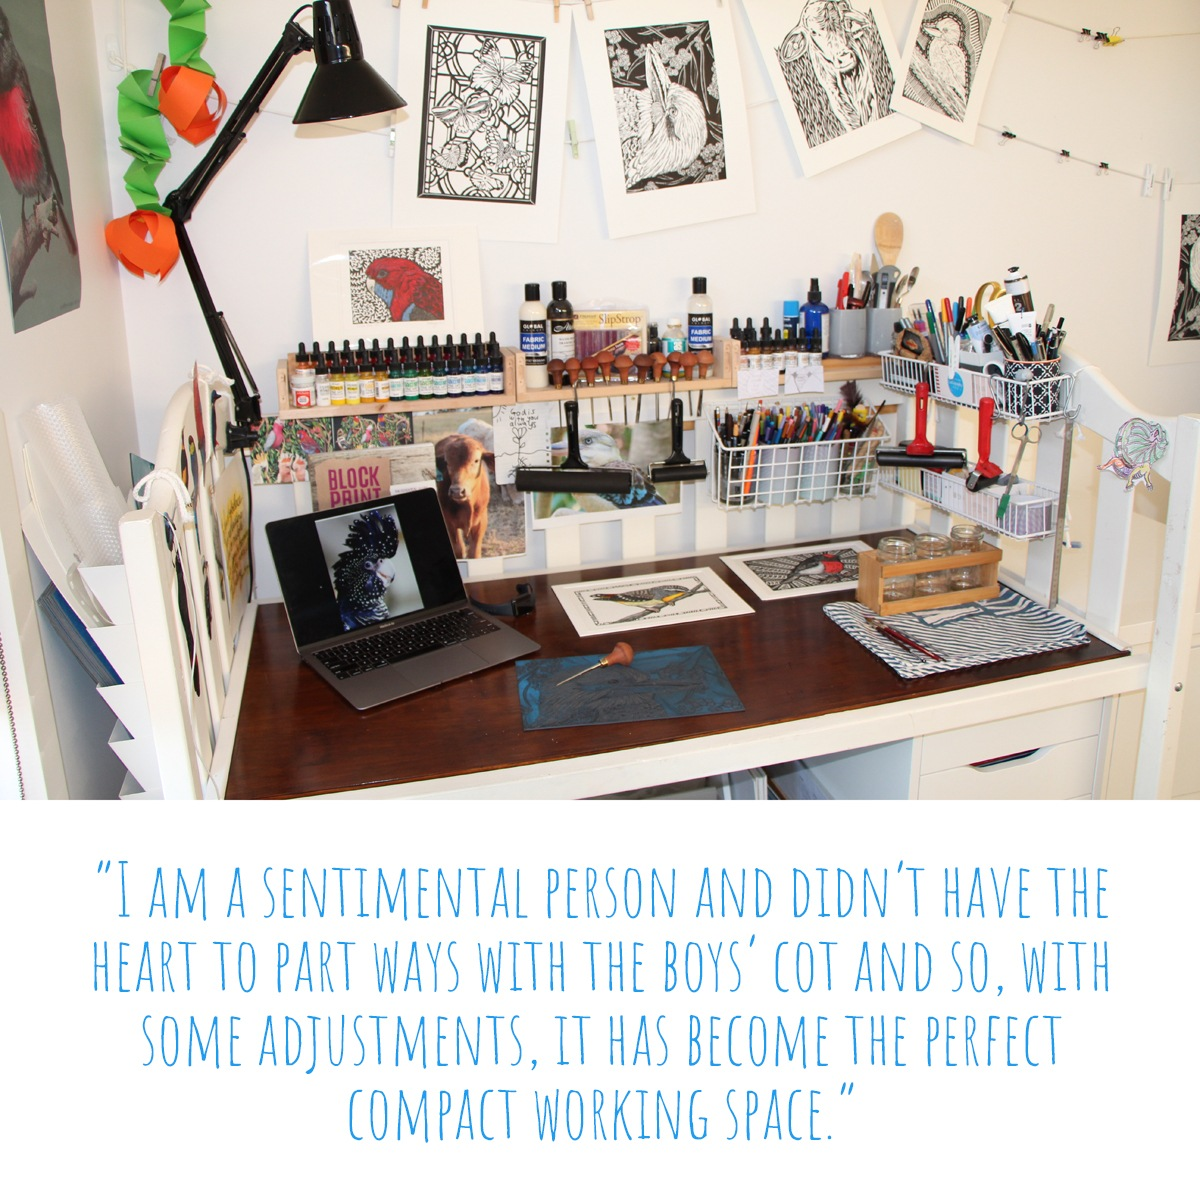 The converted cot that now serves as Sarah's work desk and a collection of prints hung from string to dry on the wall behind; 'I am a sentimental person and didn't have the heart to part ways with the boys' cot and so, with some adjustments, it has become the perfect compact working space'